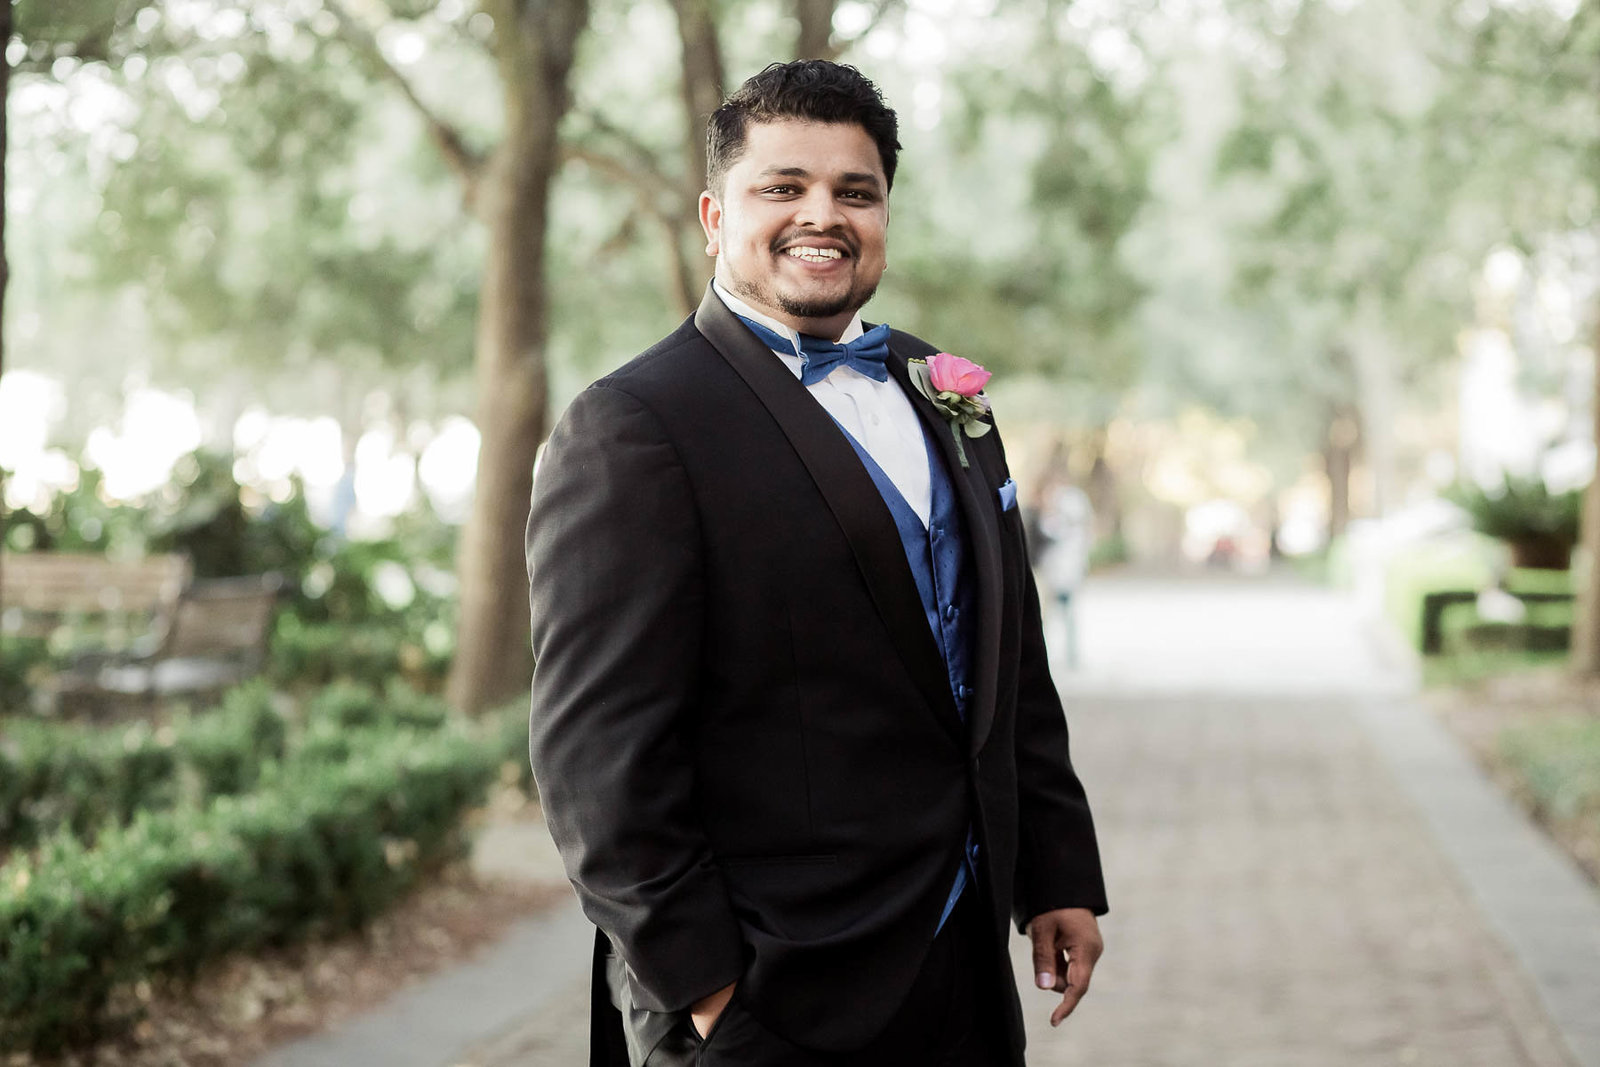 Groom stands under trees at Waterfront Park, South Carolina